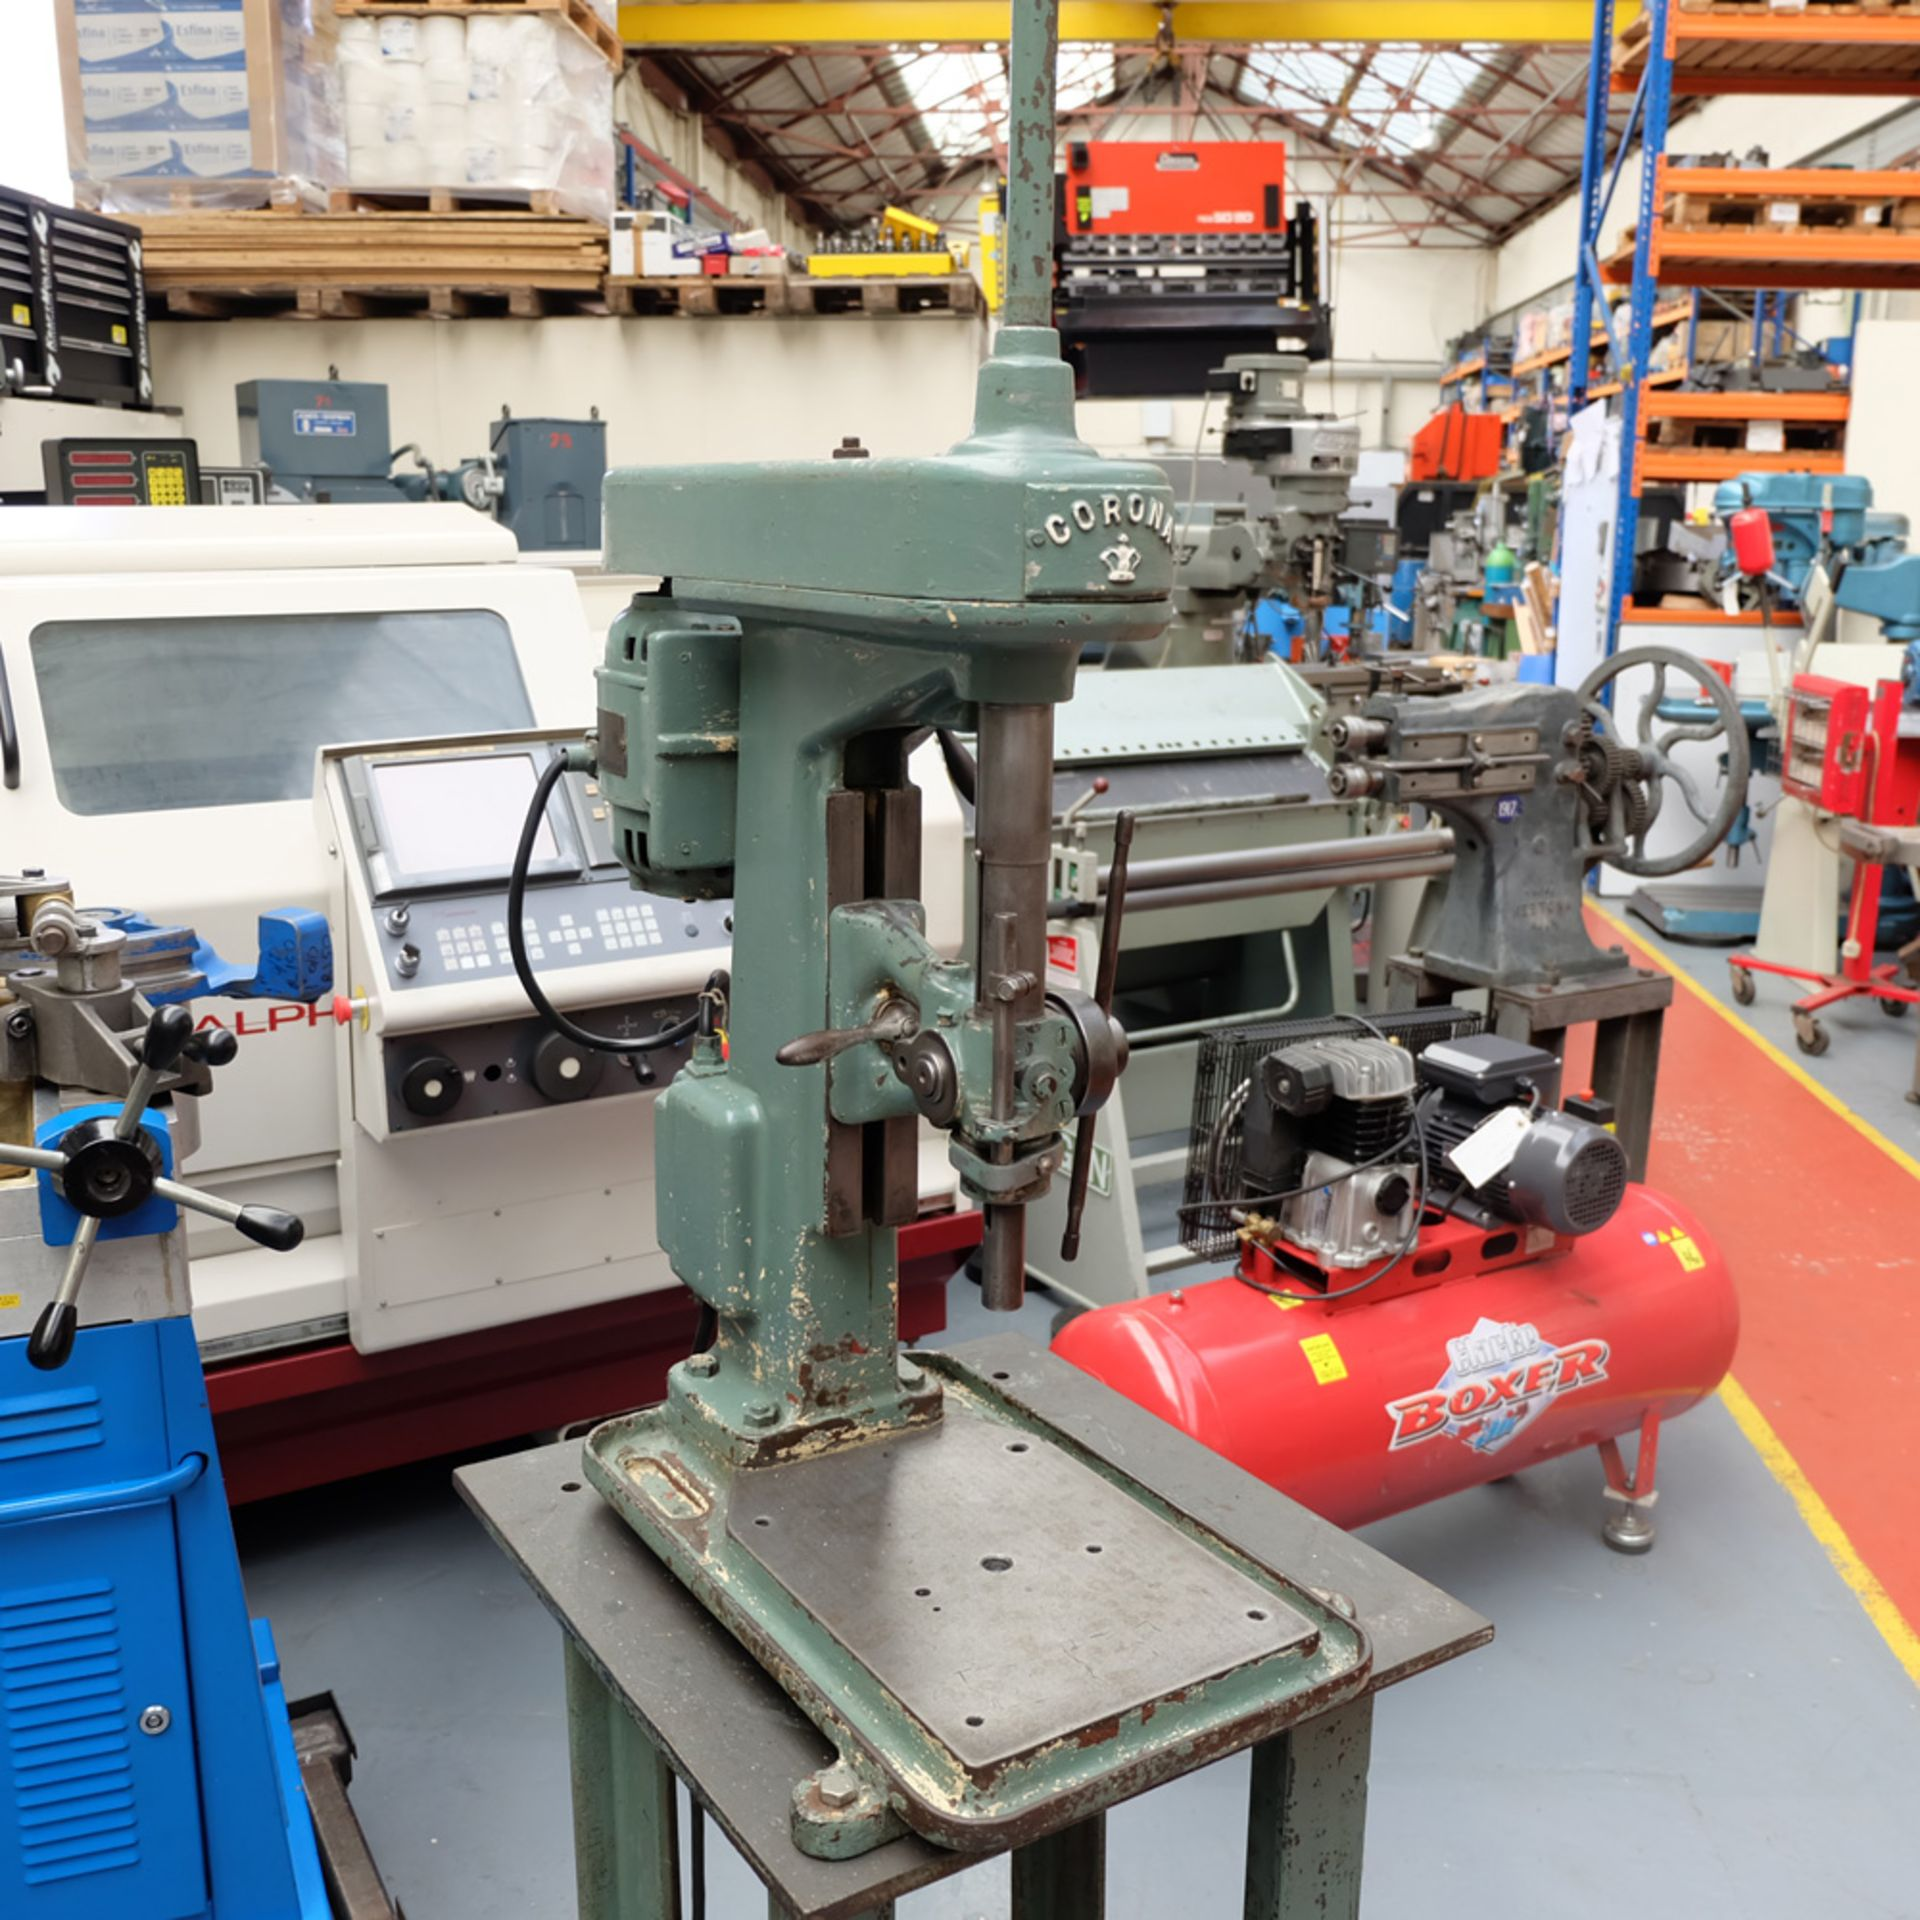 Pollard Corona Model 1FX Bench Drilling Machine. Throat 150mm. Spindle Speeds 500 - 1500rpm. - Image 2 of 7